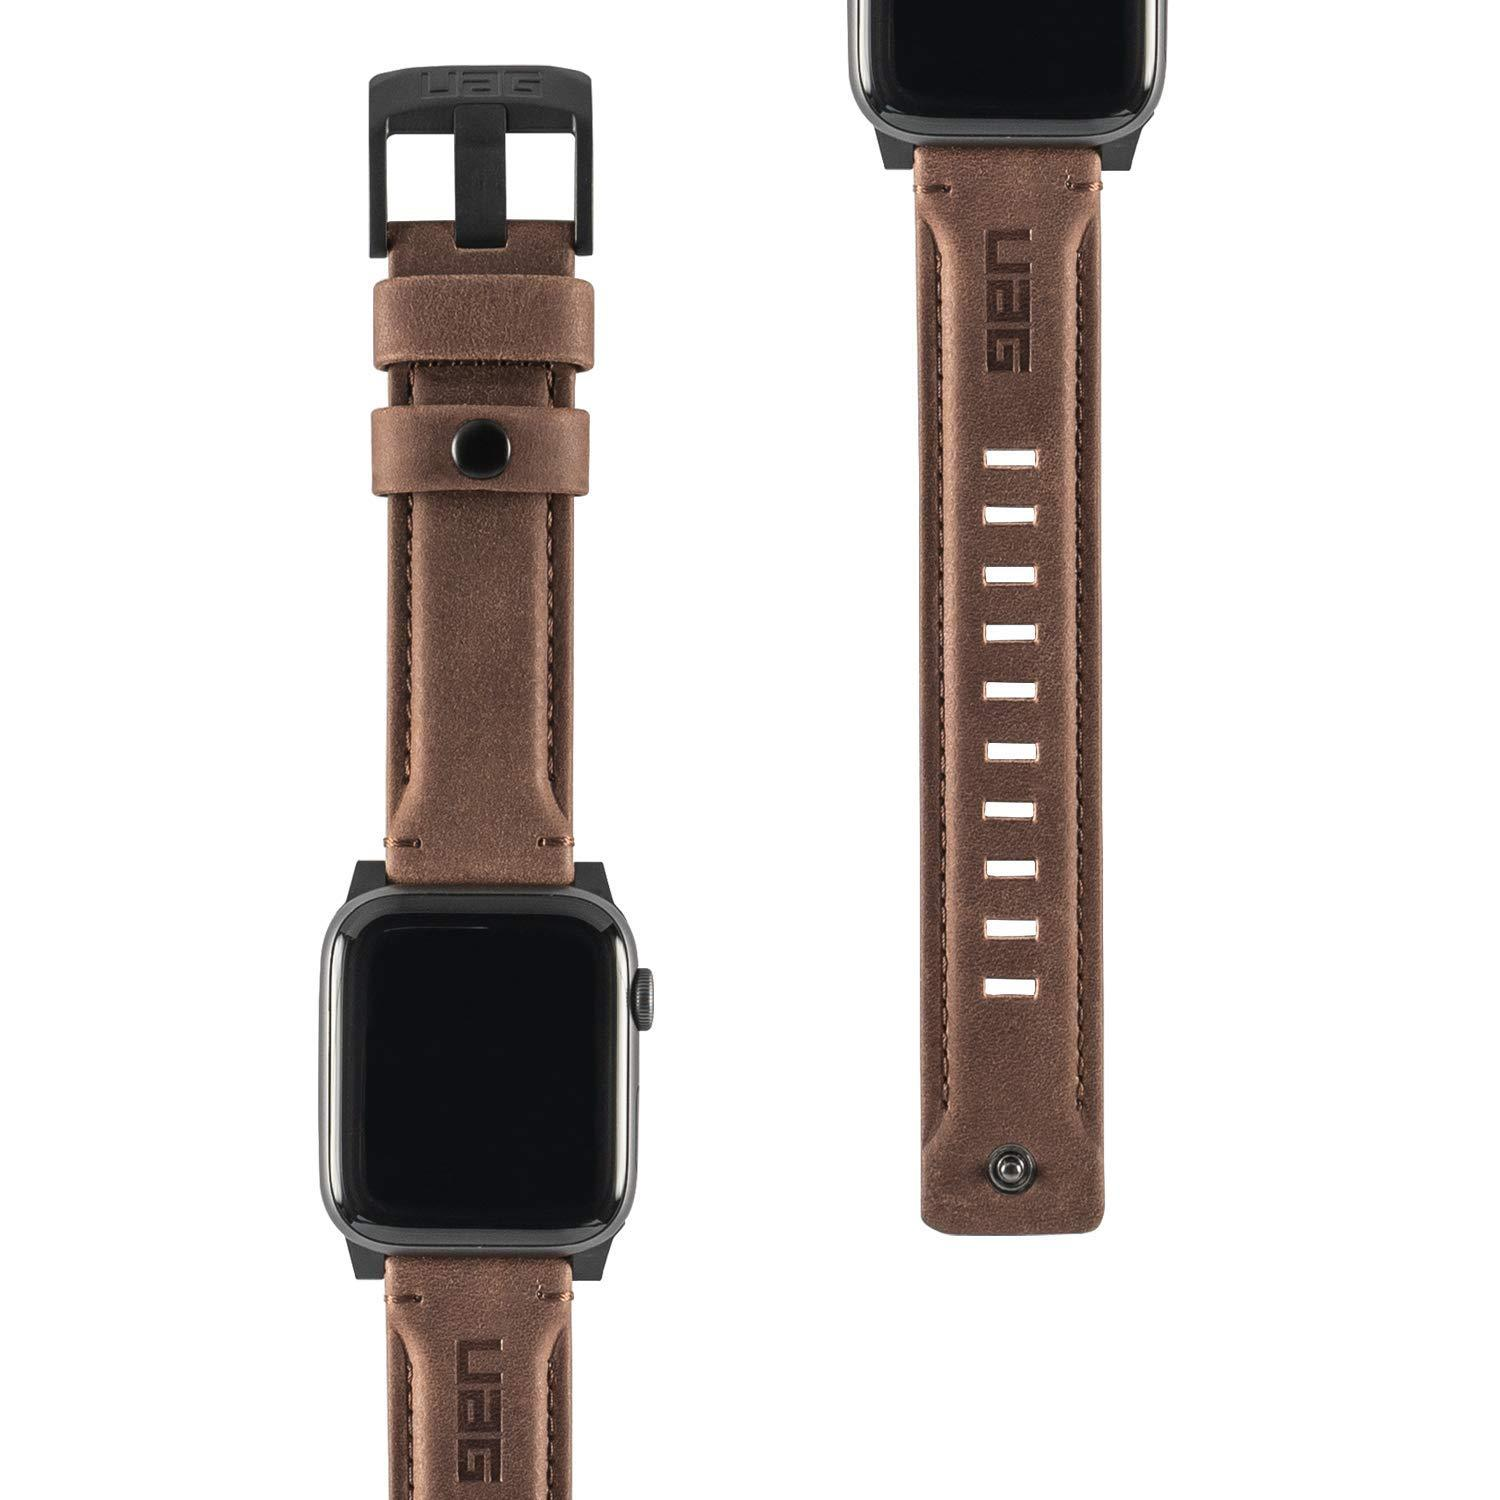 Original UAG Leather Strap for Apple Watch 44mm  & 42mm, Series 4/3/2/1, Leath